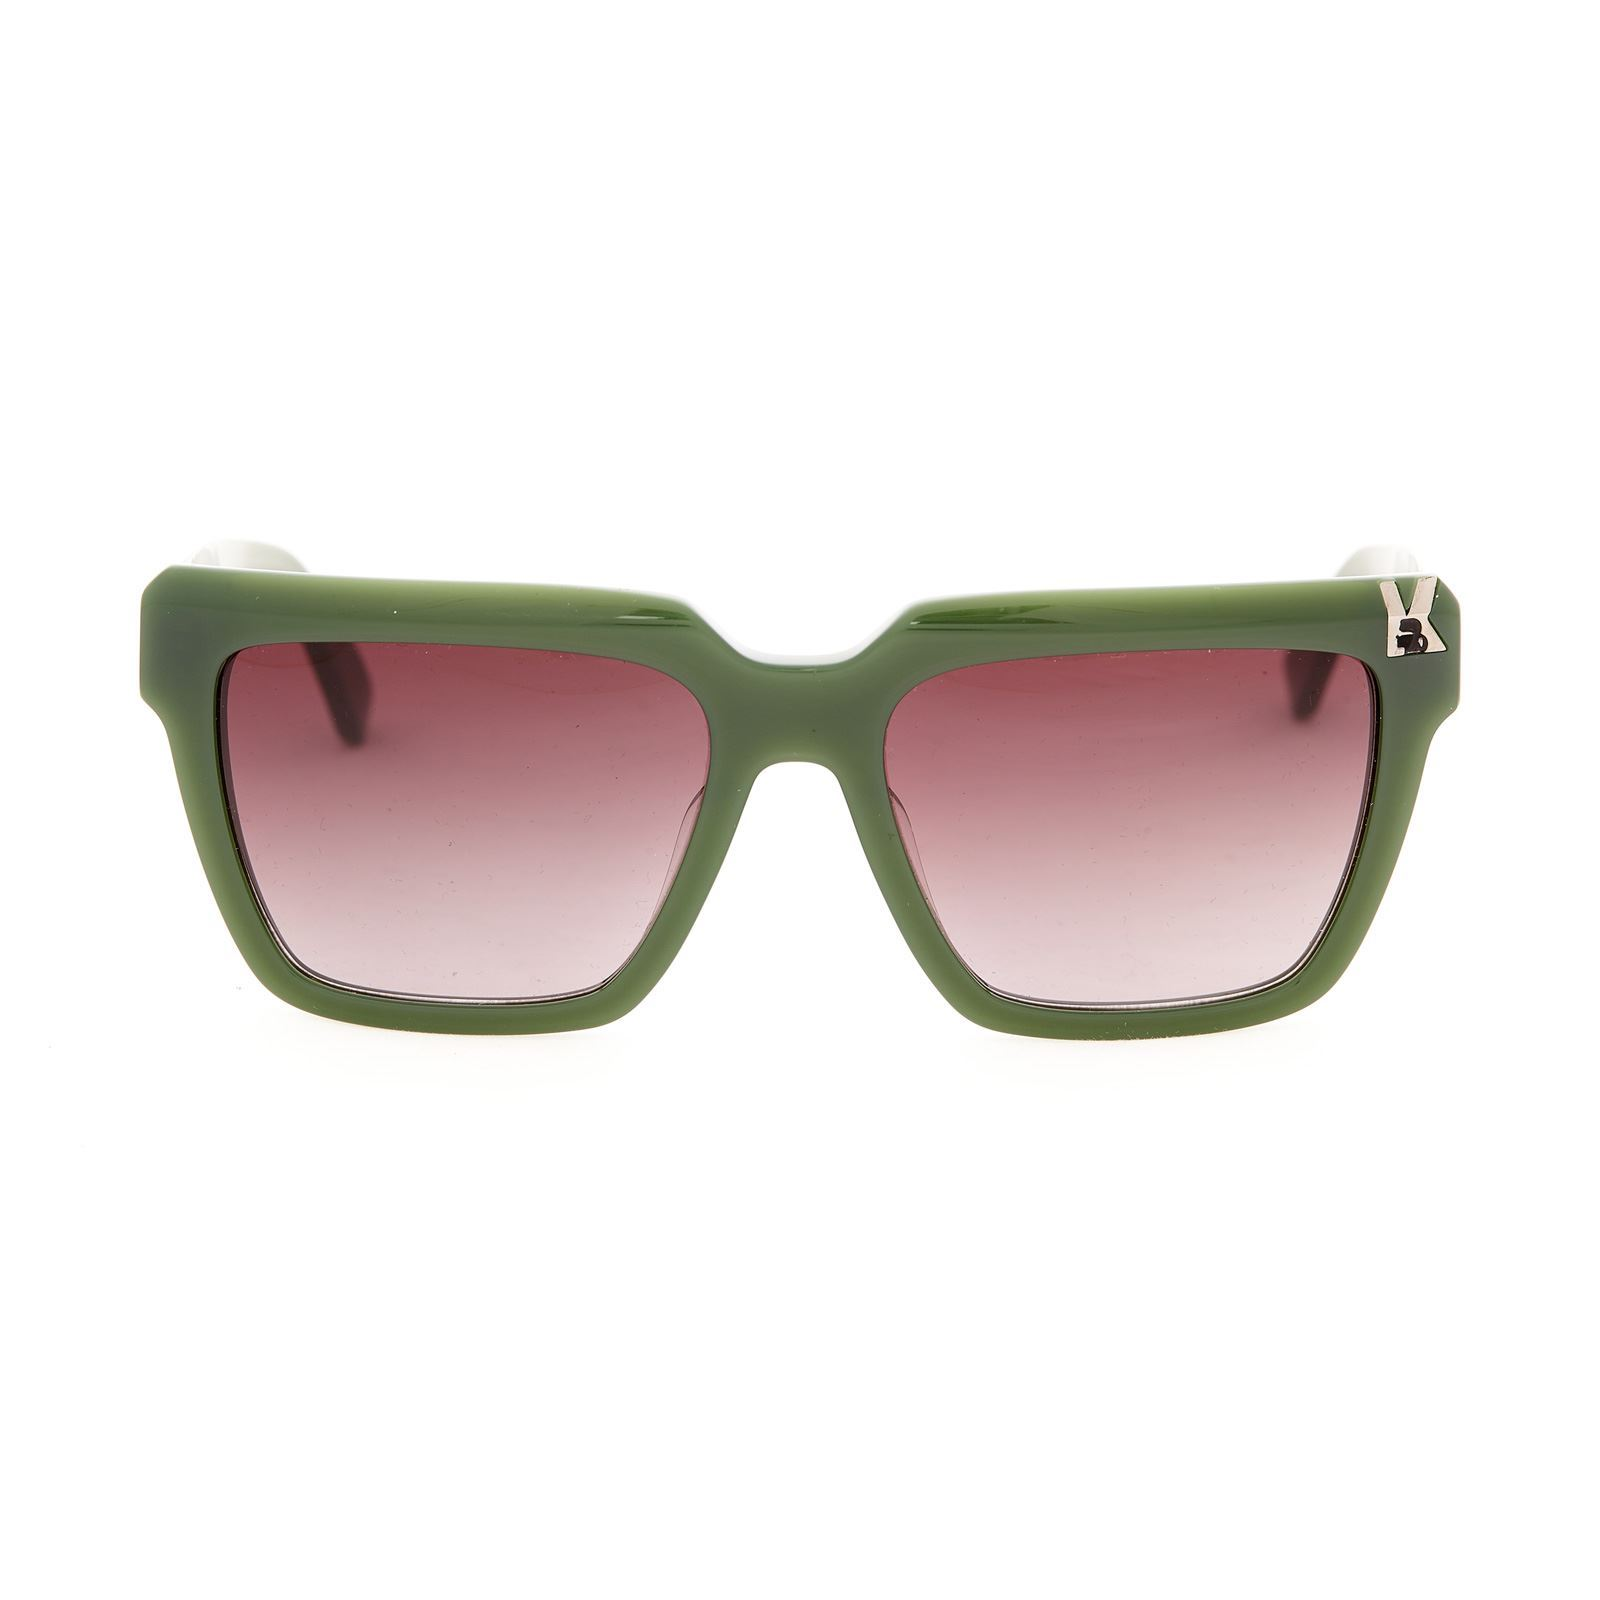 karl lagerfeld lunettes de soleil vert brandalley. Black Bedroom Furniture Sets. Home Design Ideas